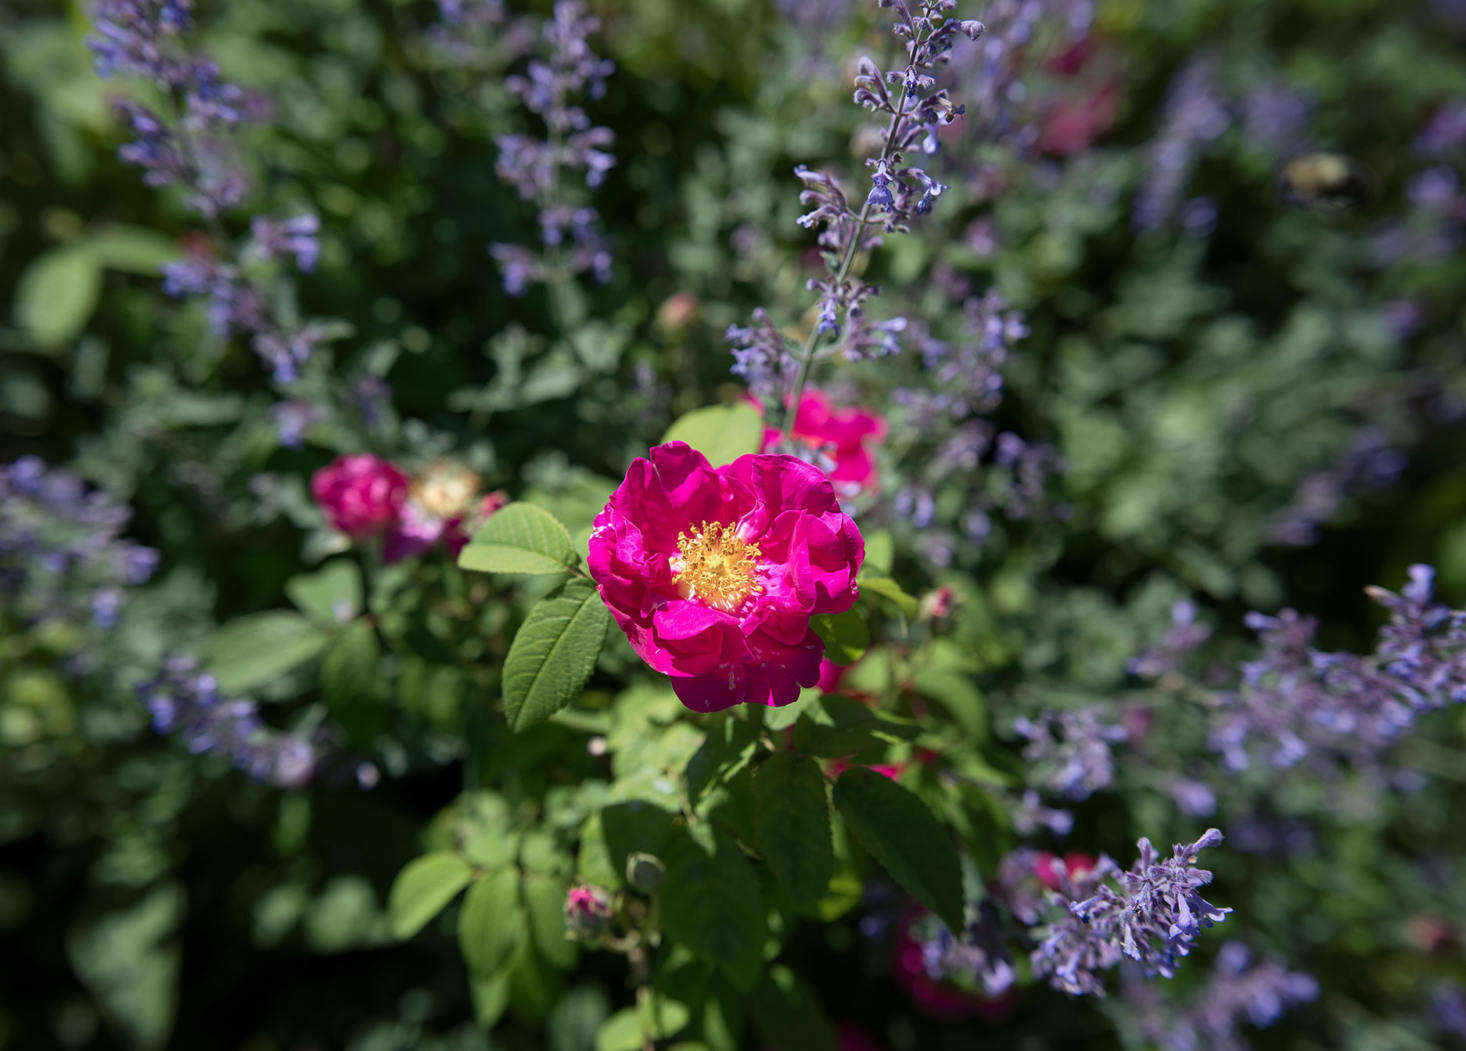 Purple Nepeta 'Six Hills Giant' is a foil for Rosa gallica officinalis (known as the apothecary rose, it is an ancient variety found in medieval gardens). See more in Landscaping Ideas: A Classic Cottage Garden on Cape Cod. Photograph by Justine Hand.